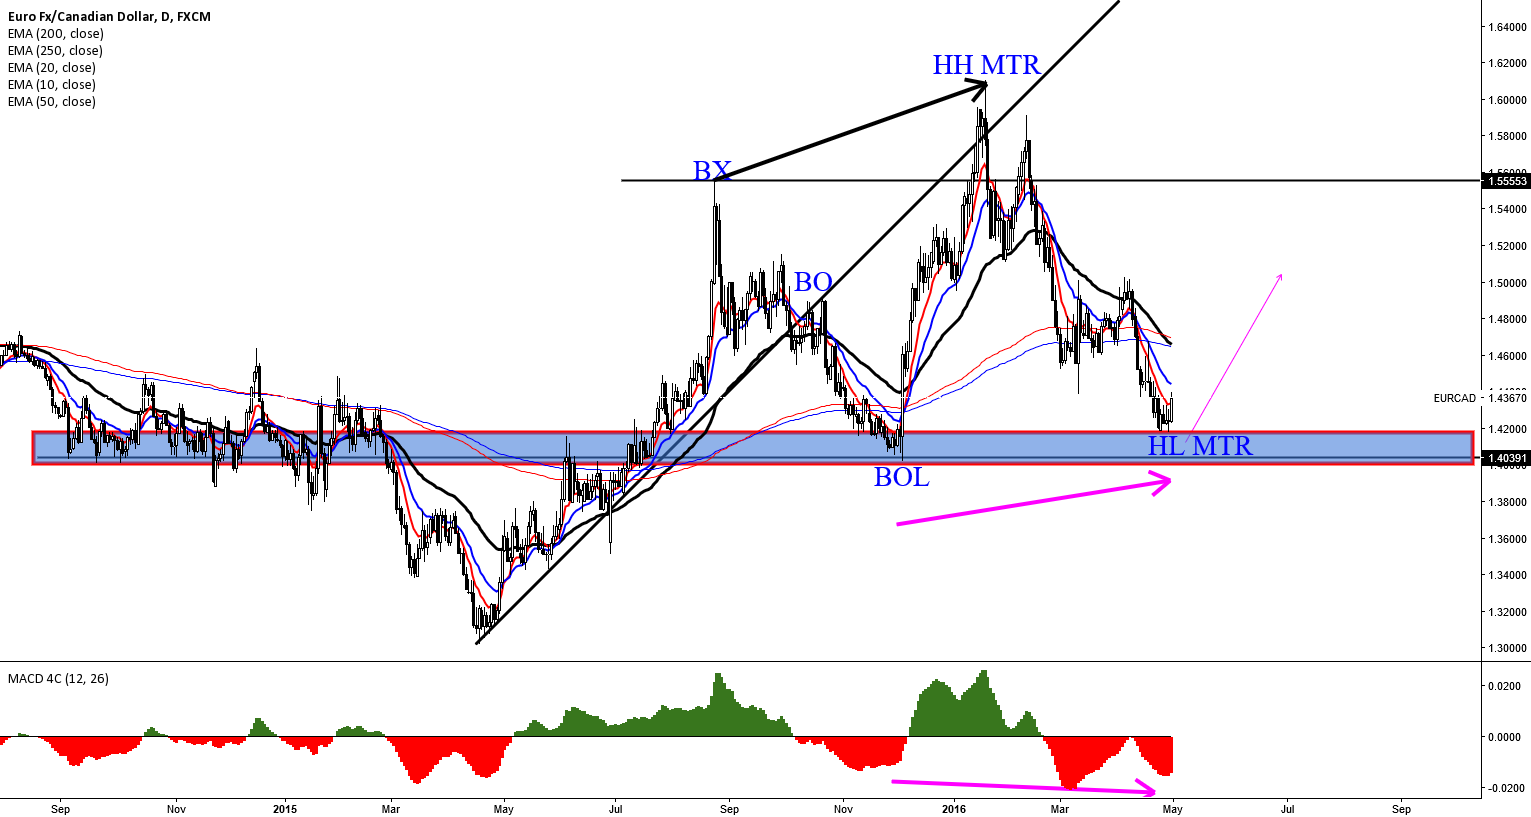 EURCAD: IN TRADING RANGE MODE. 2ND LEG UP EXPECTED